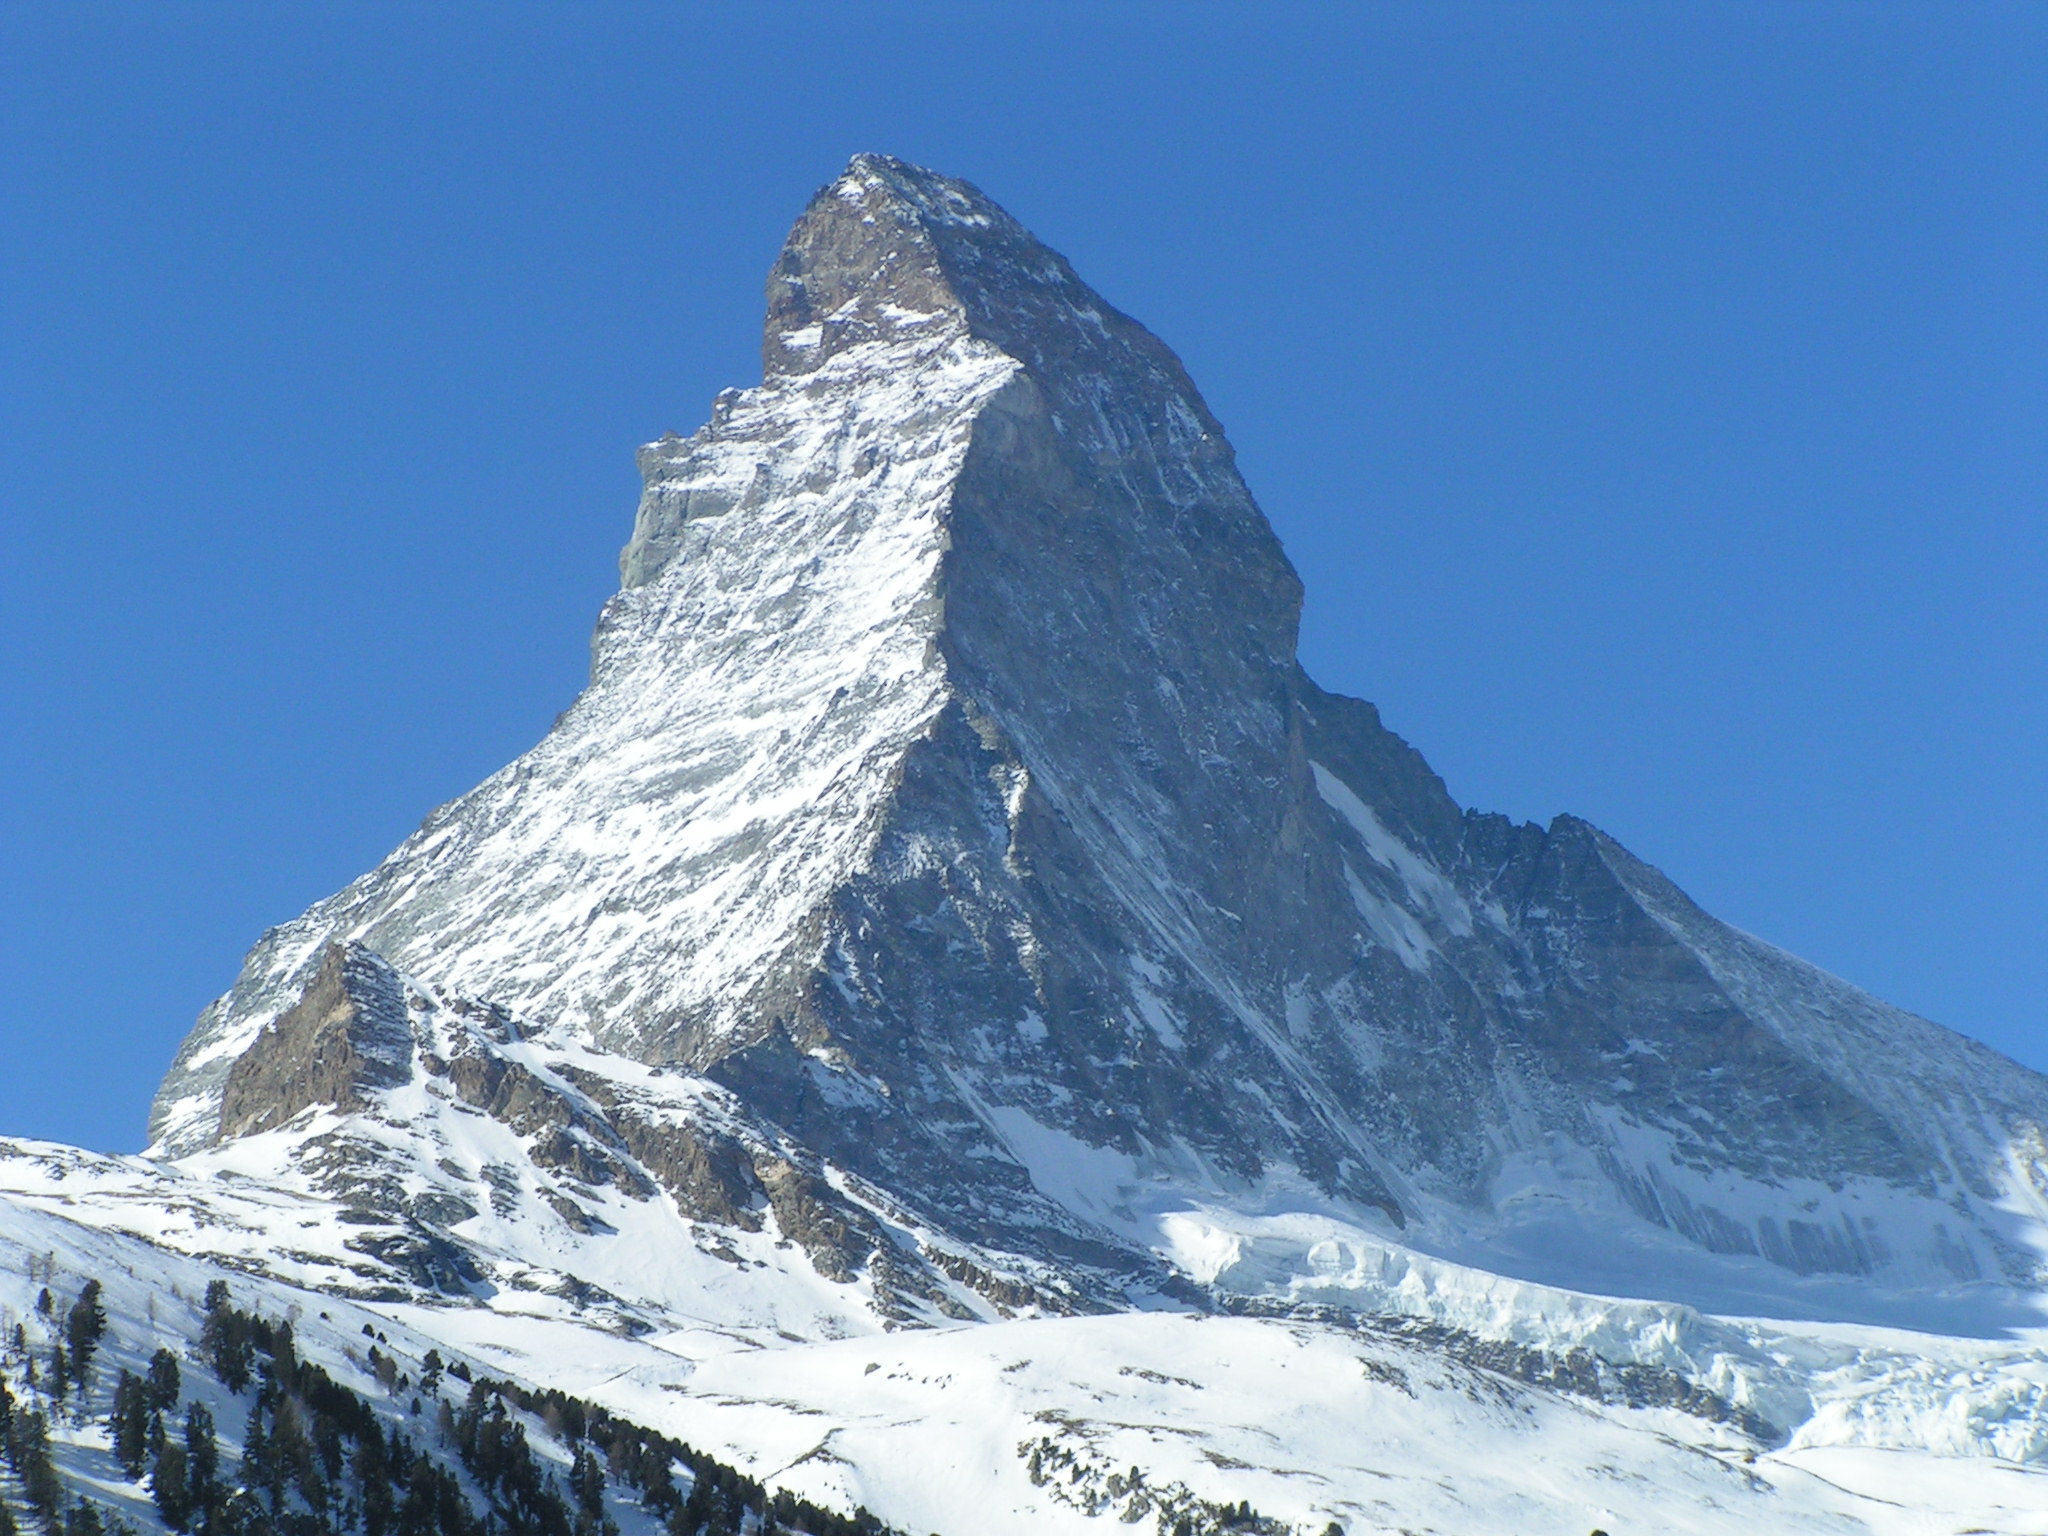 https://i1.wp.com/upload.wikimedia.org/wikipedia/commons/2/26/Matterhorn-EastAndNorthside-viewedFromZermatt_landscapeformat.jpg